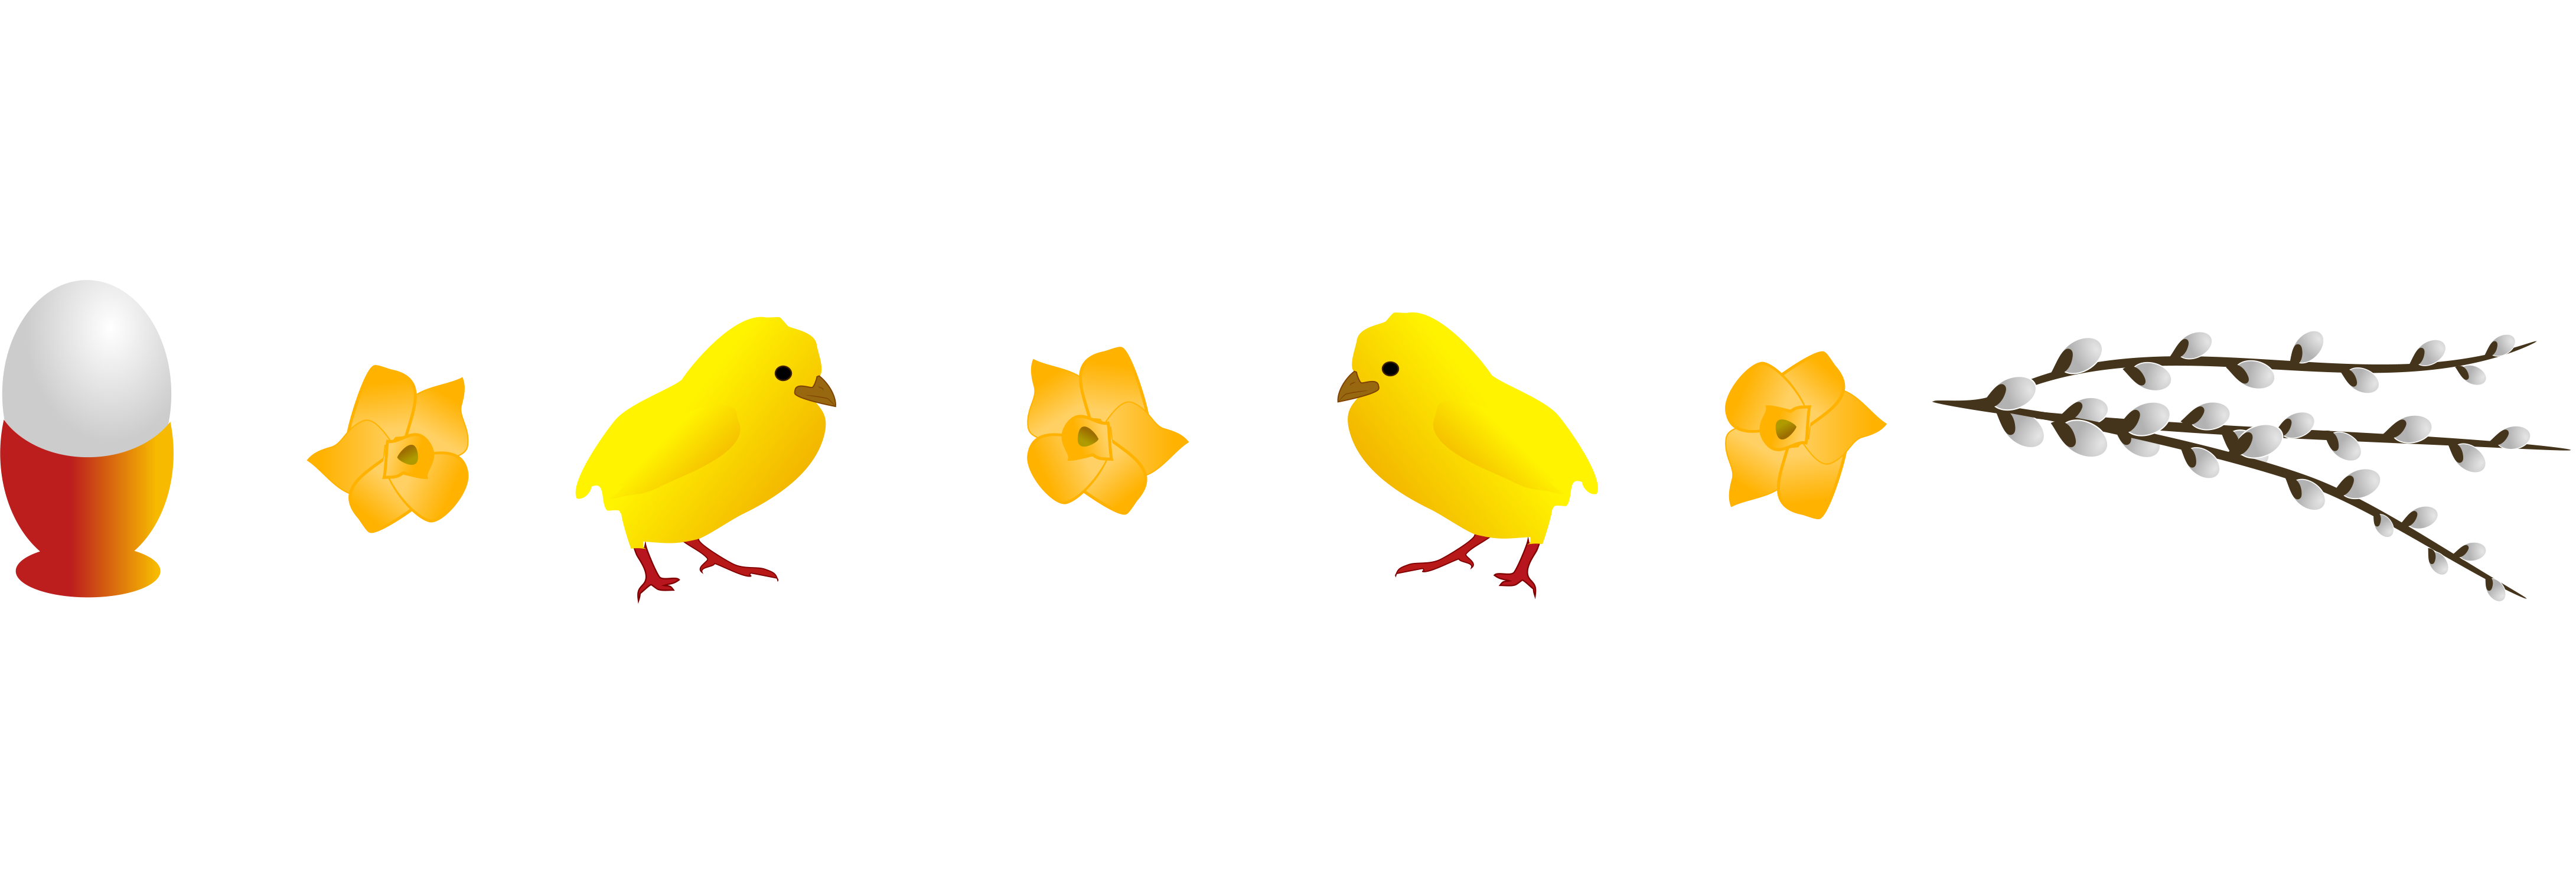 Easter PNG Image